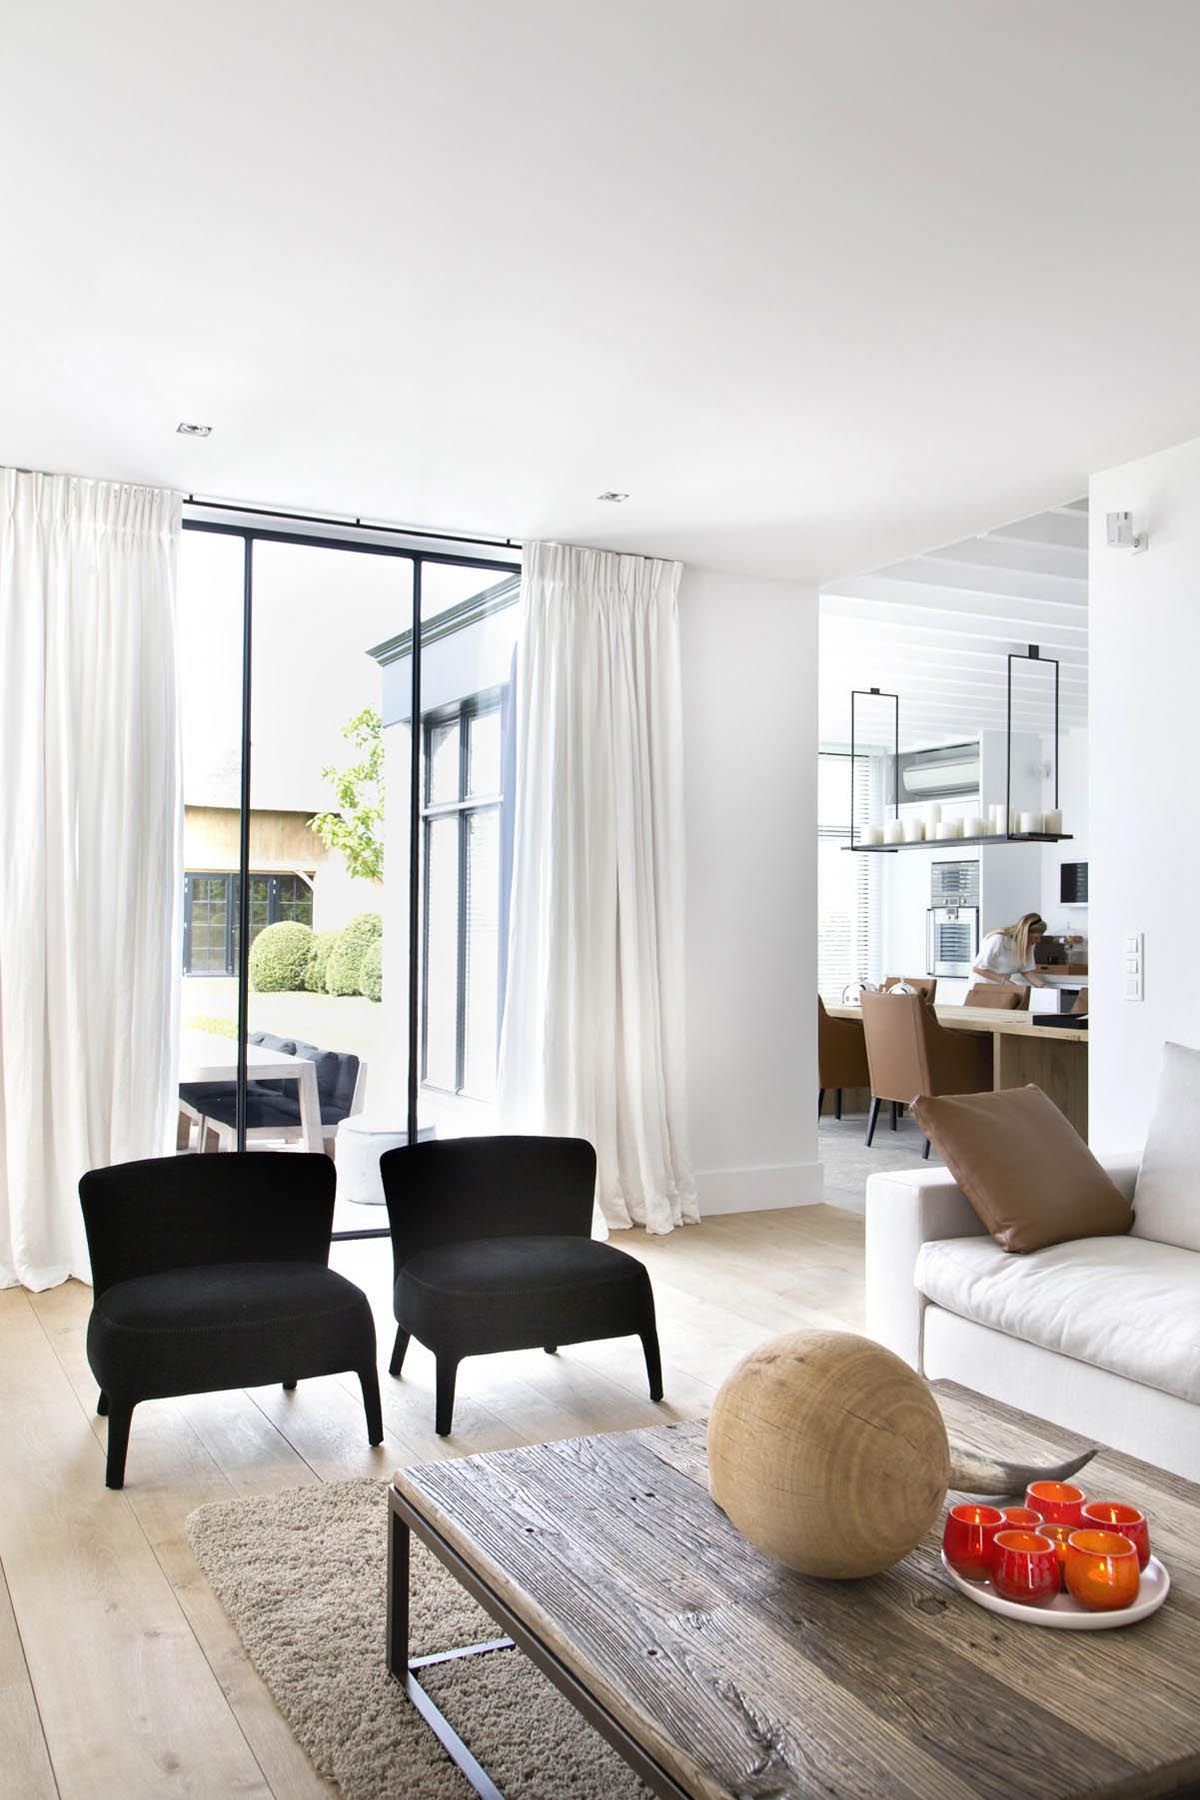 Classic Living Rooms Interior Design: Traditional Meets Modern... Lovely Clean Space With Simple